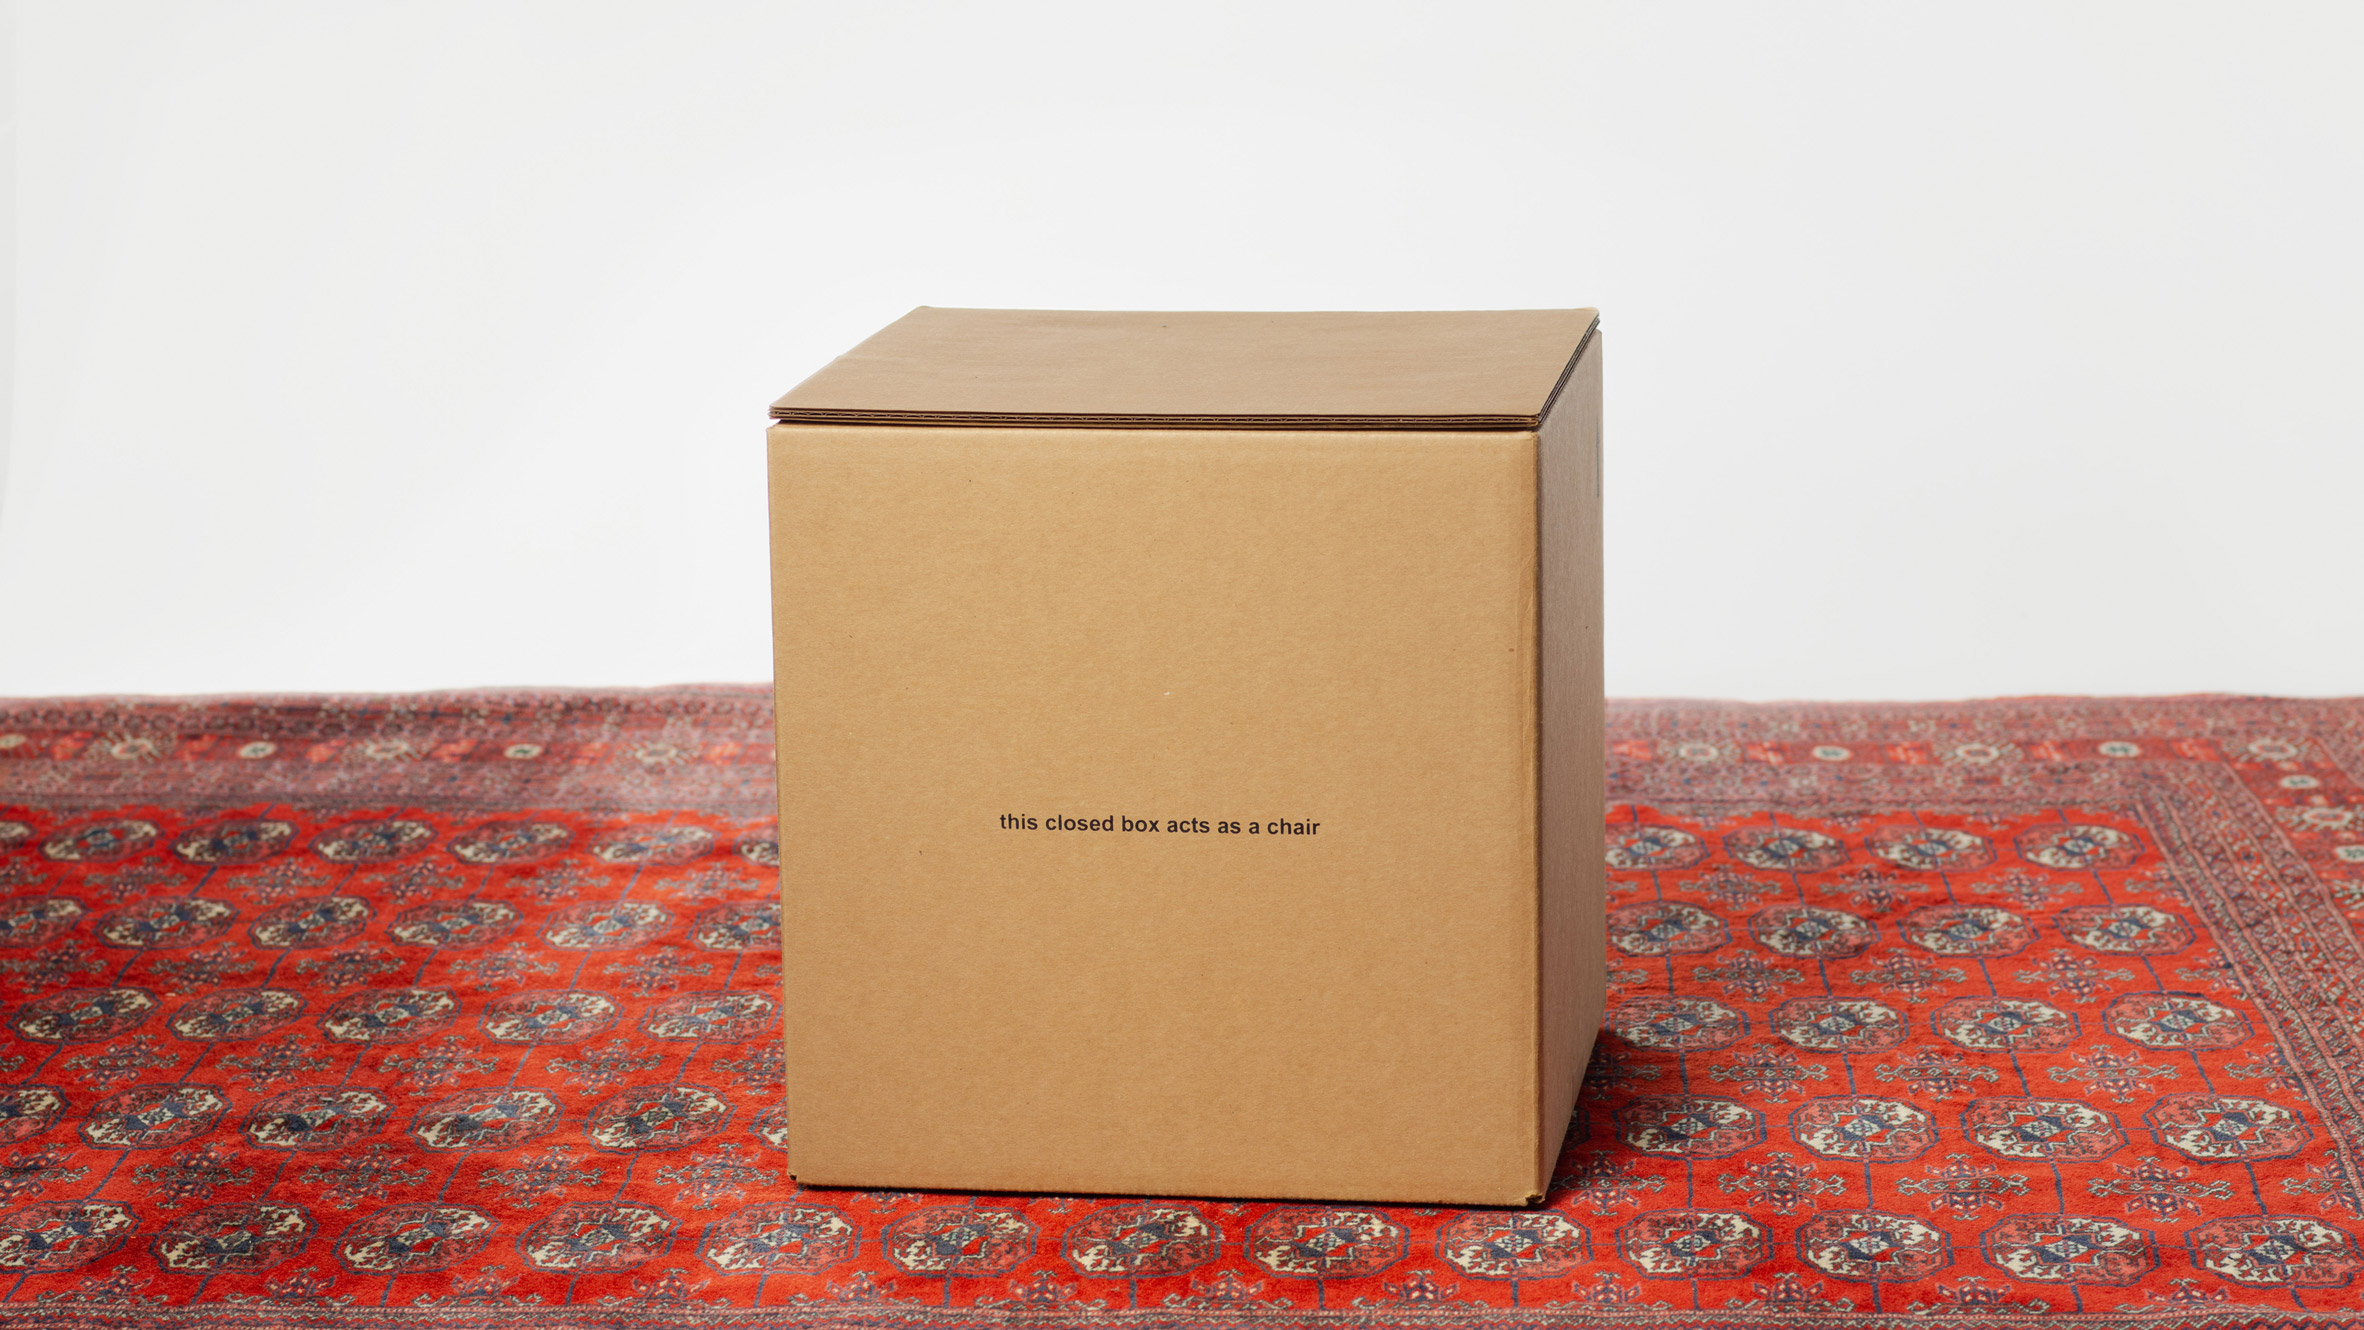 Donttakethisthewrongway reimagines cardboard box as chair